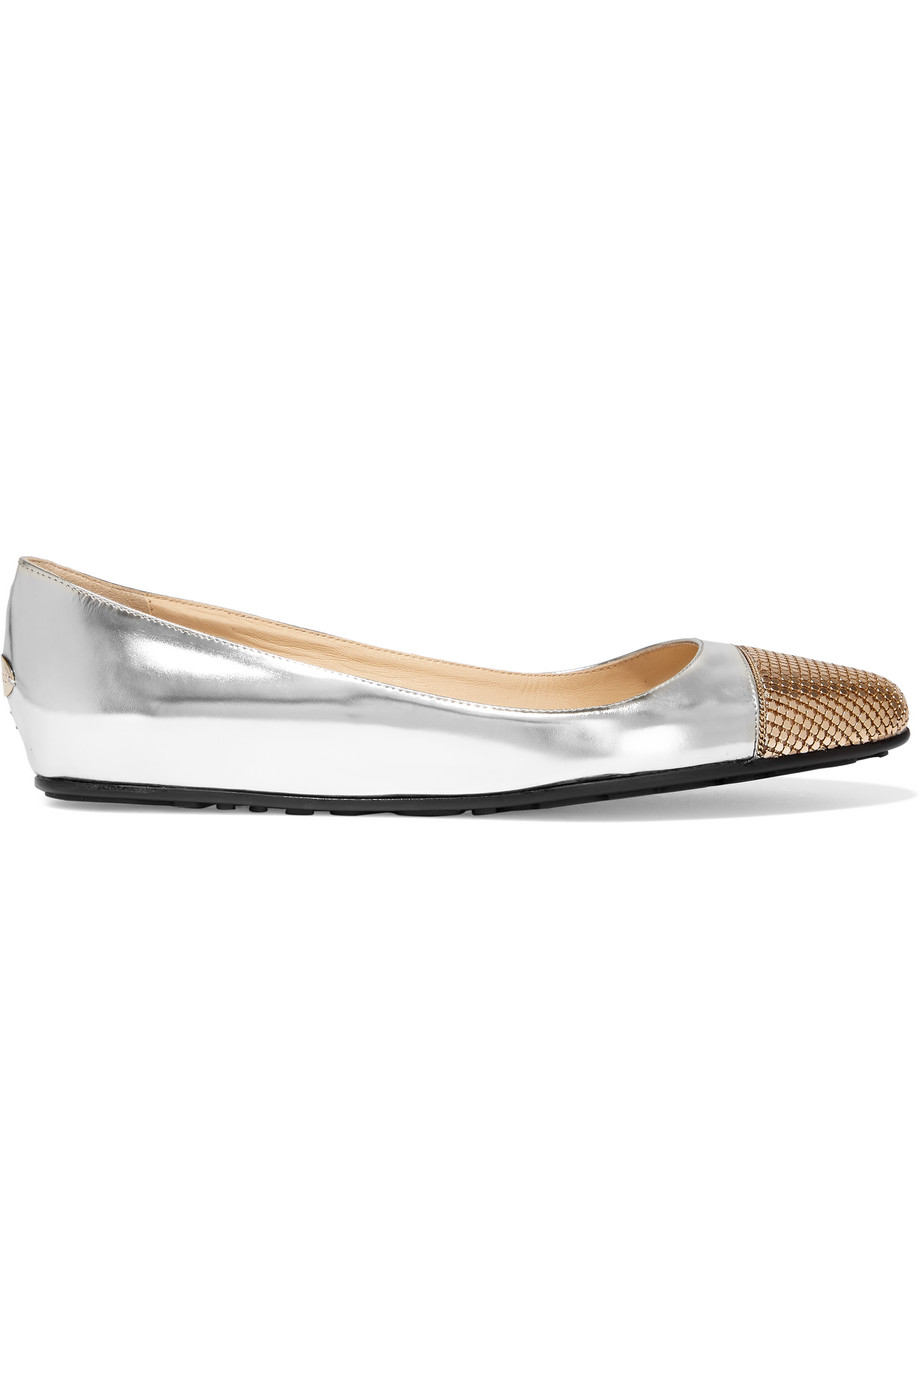 Jimmy Choo Waine Embellished Metallic Leather Ballet Flats, Silver/Bronze, Women's US Size: 8.5, Size: 39